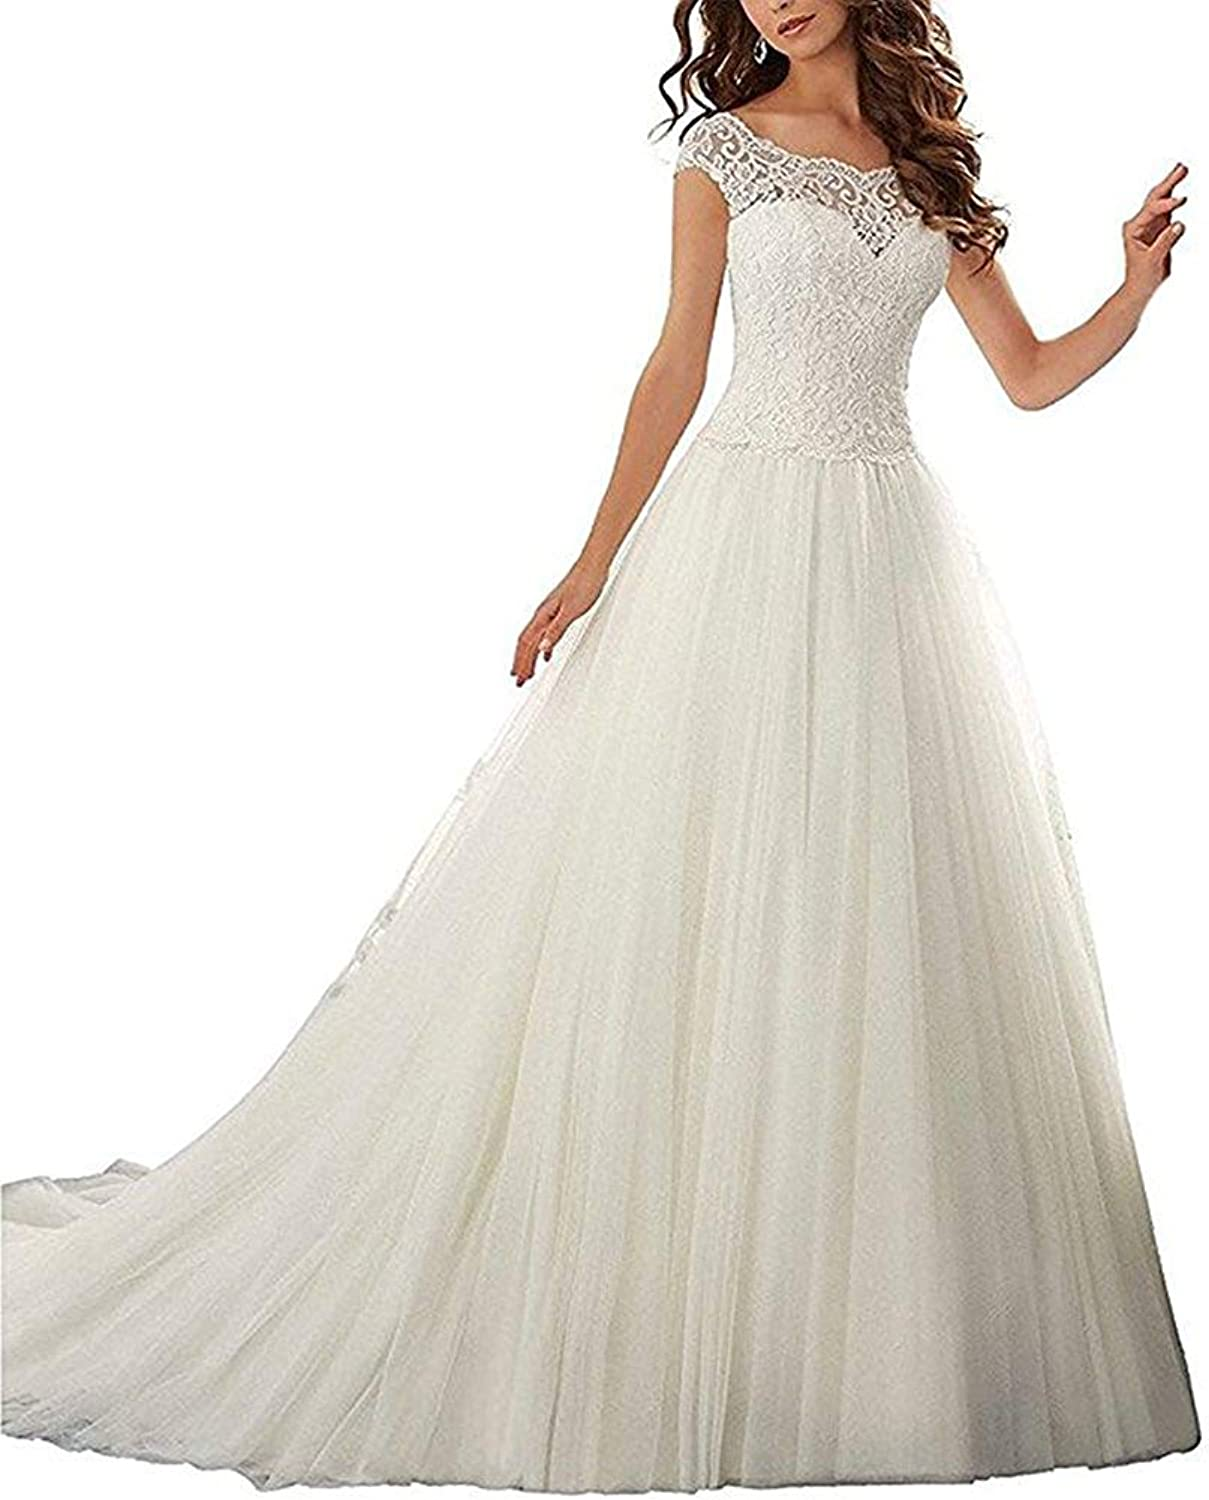 Alexzendra Long ALine Lace Wedding Dresses for Bride Cap Sleeves Tulle Bride Gown